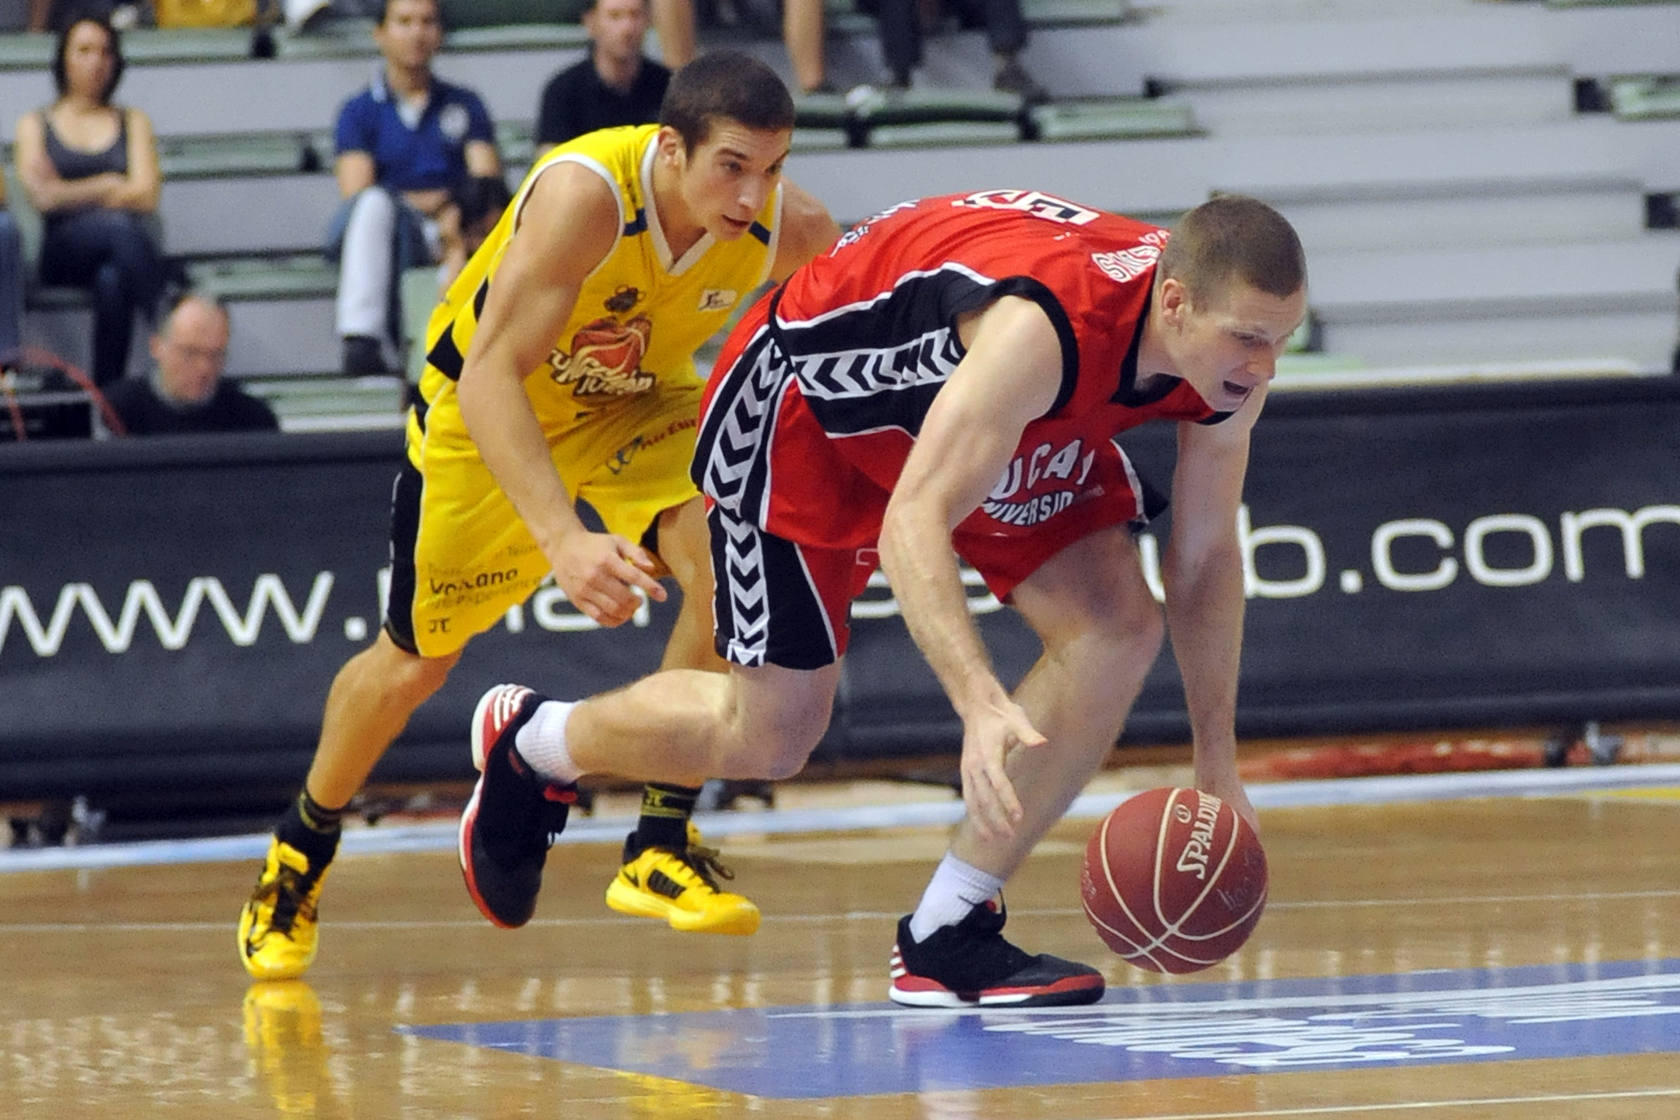 UCAM CB Murcia - CB Canarias (111-108)